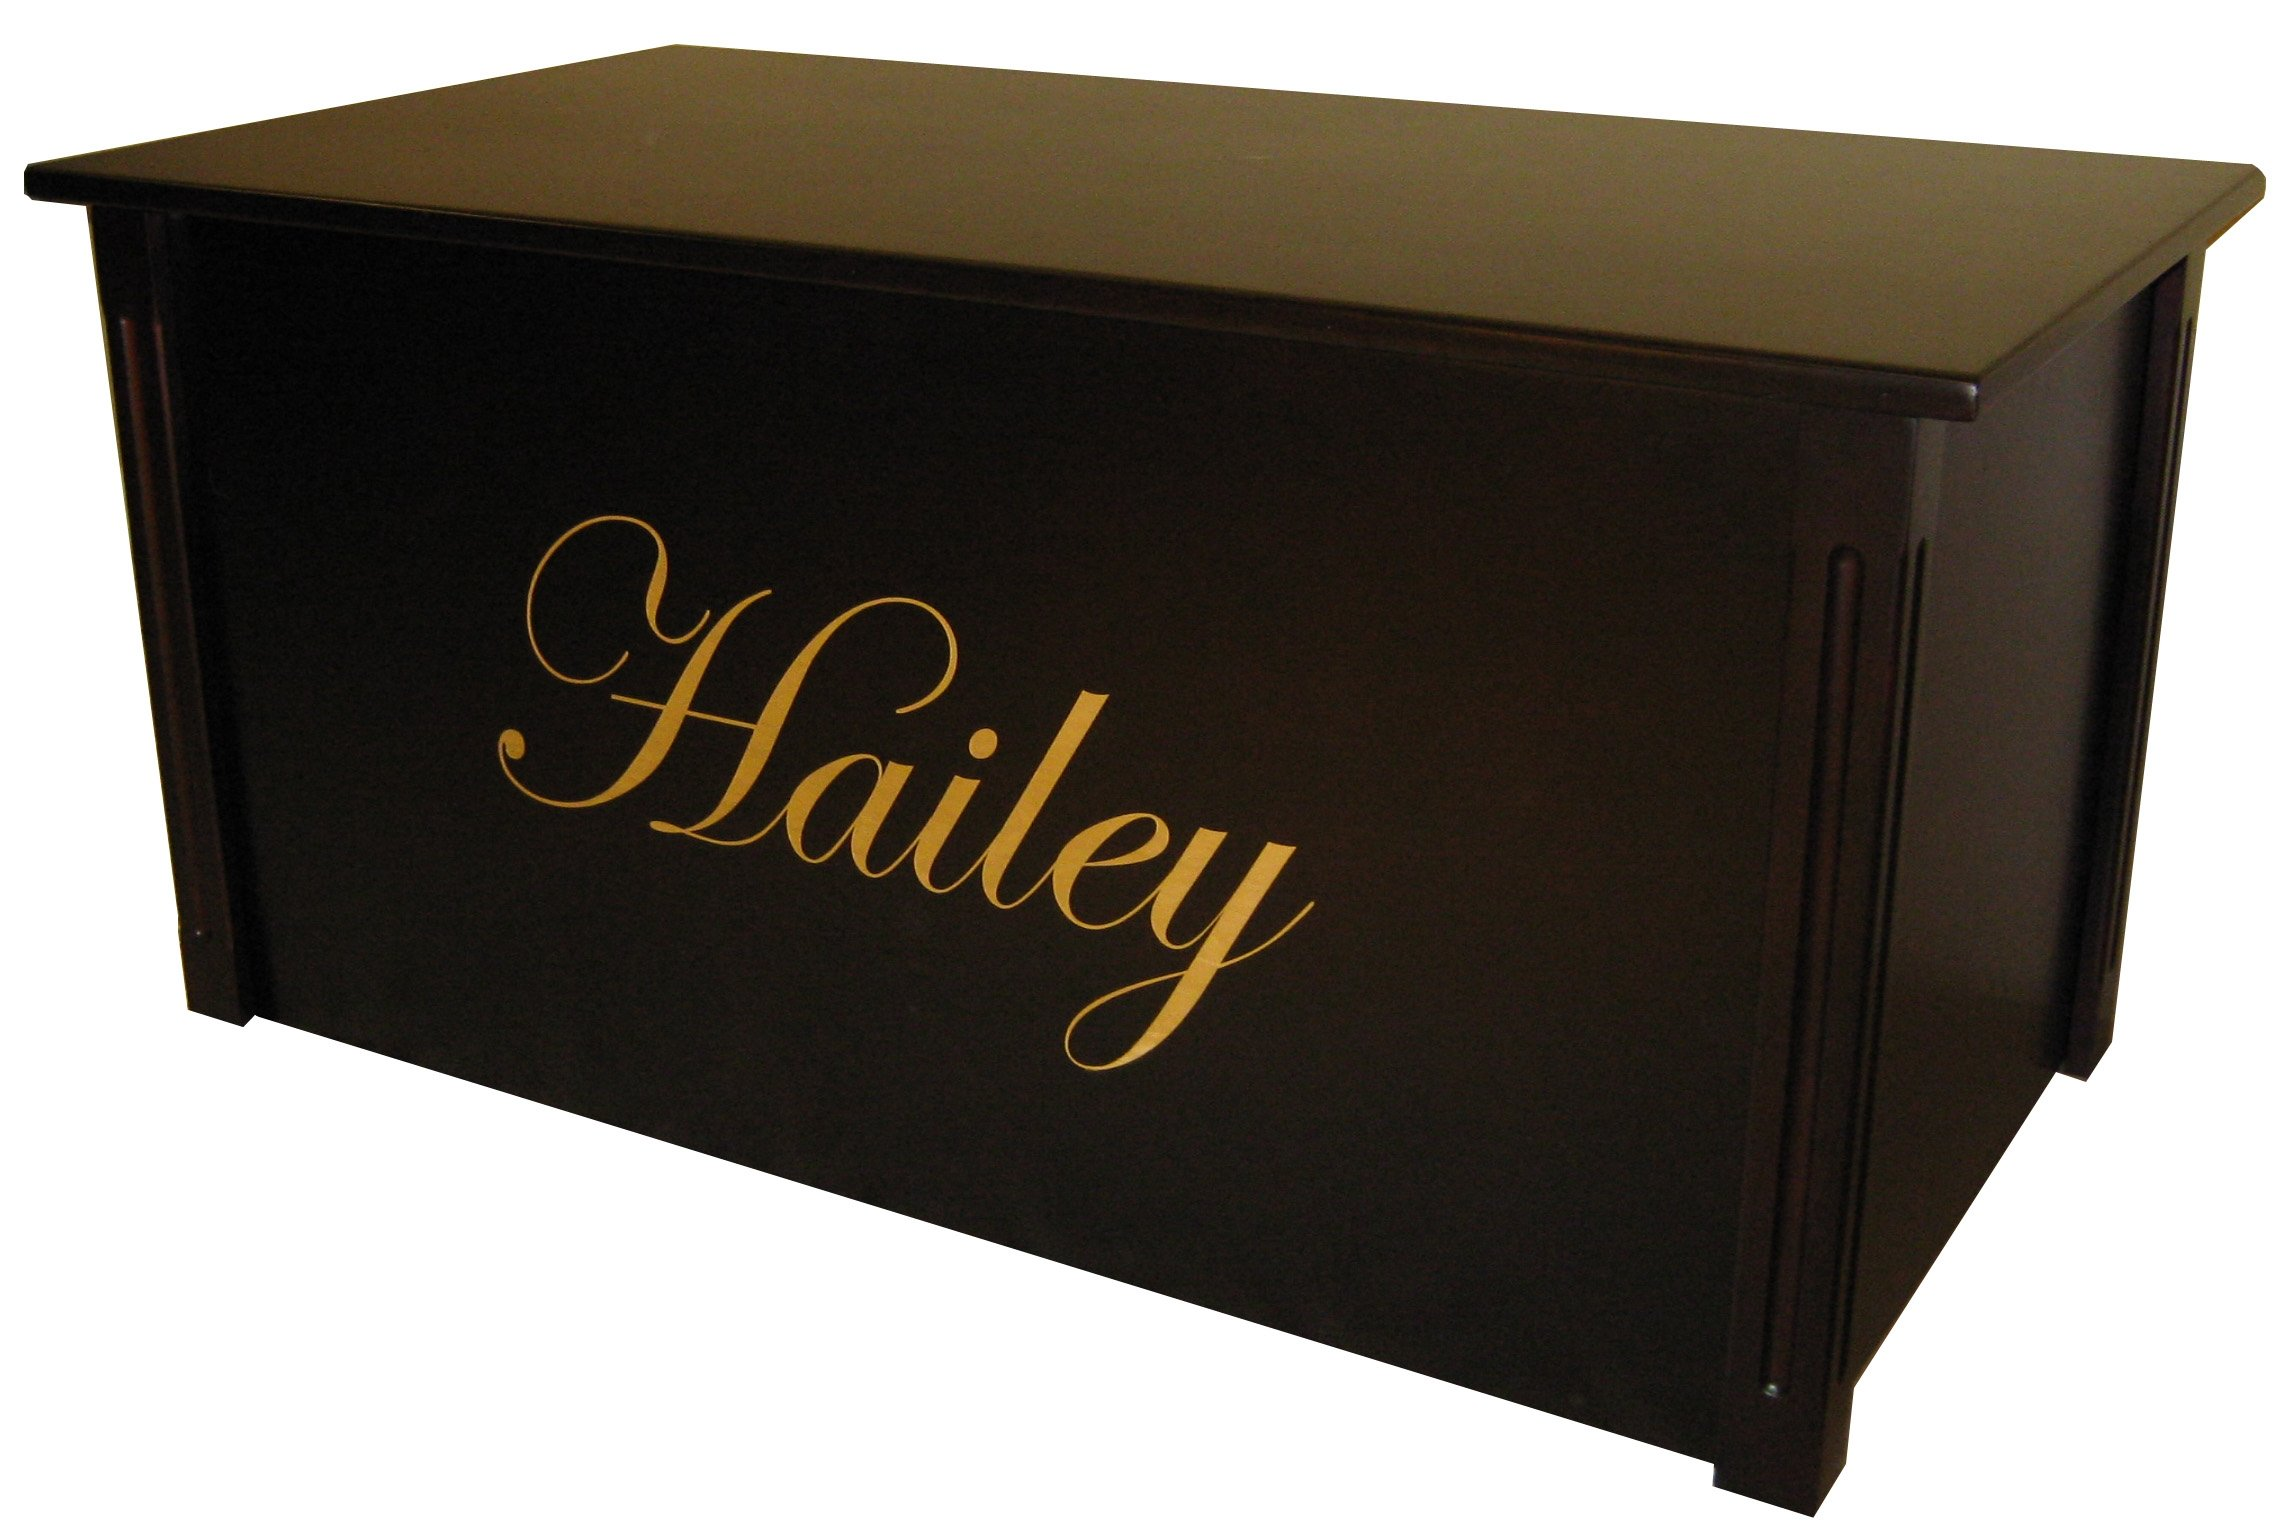 Wood Toy Box, Large Espresso Toy Chest, Personalized Edwardian Font, Custom Options (Standard Base - Gold Lettering) by Wood Toy Box